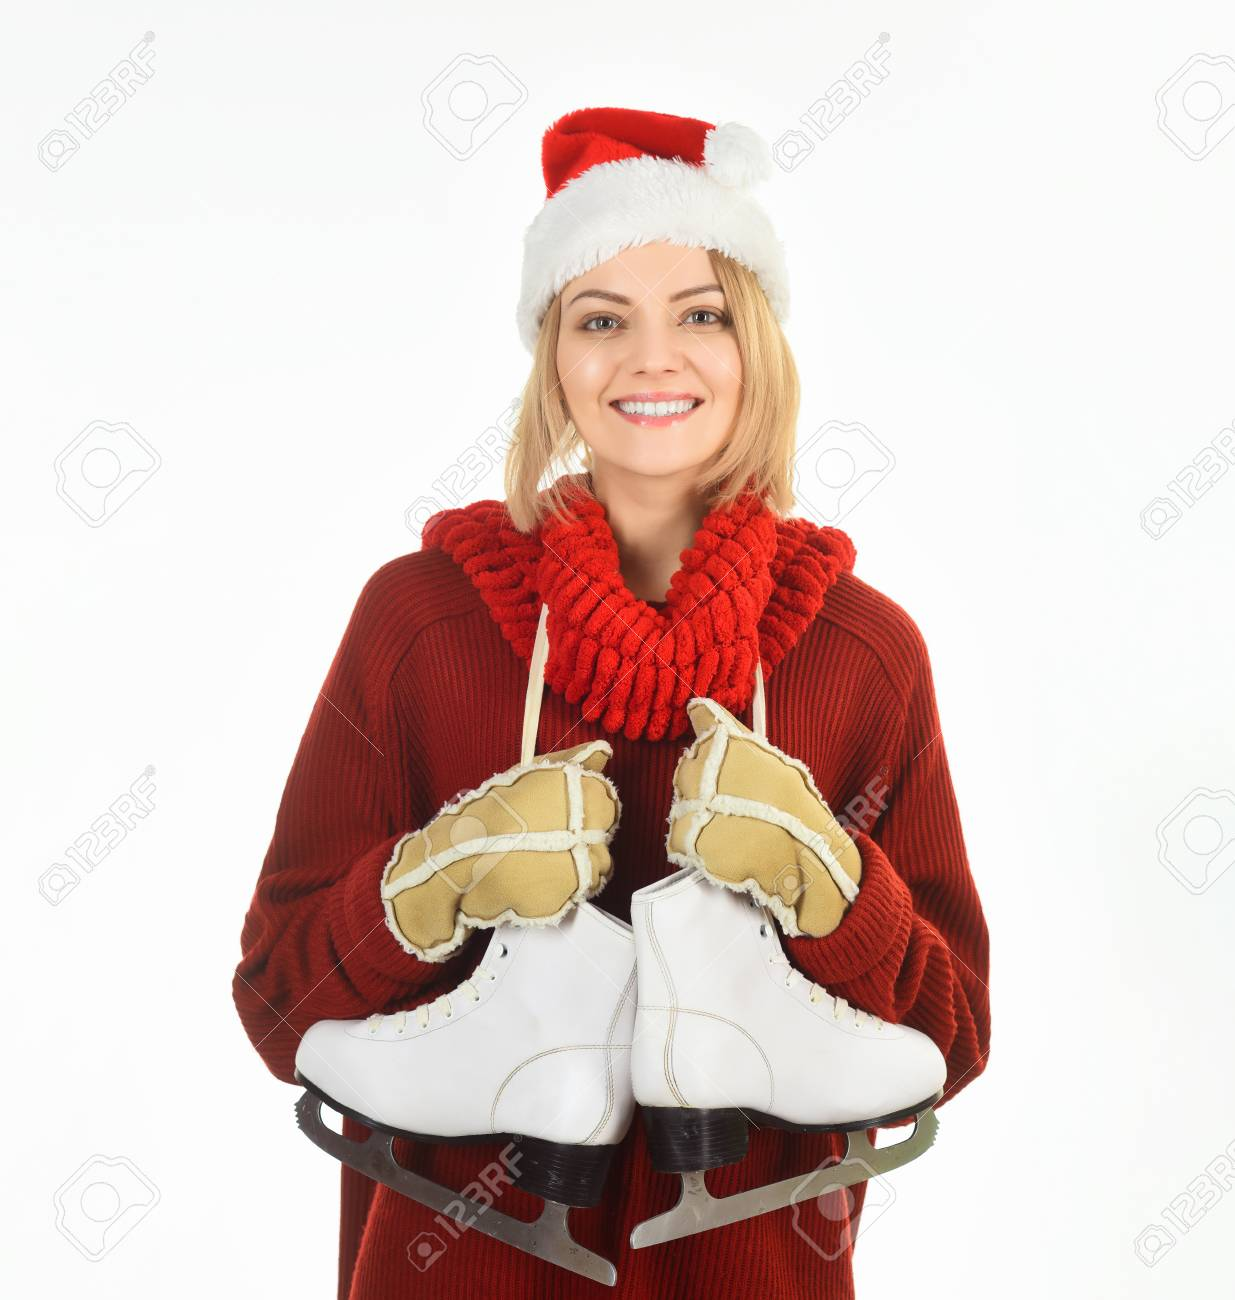 f676828e189 Girl in winter clothes with ice skates. Winter sport activity. Woman in Santa  hat